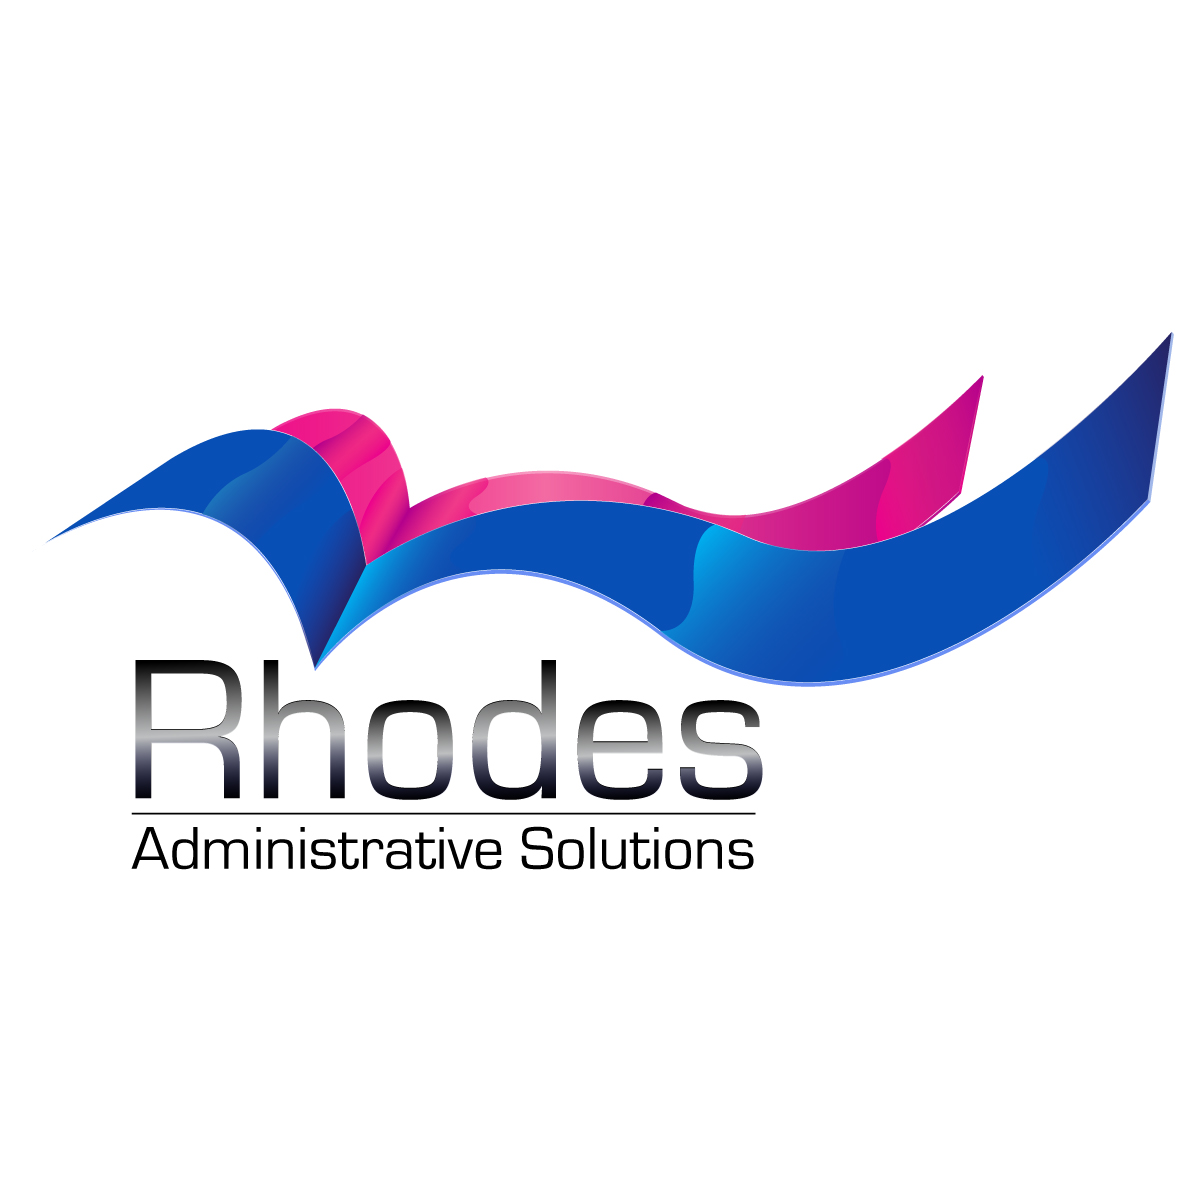 Logo design contests rhodes administrative solutions Logo design competitions